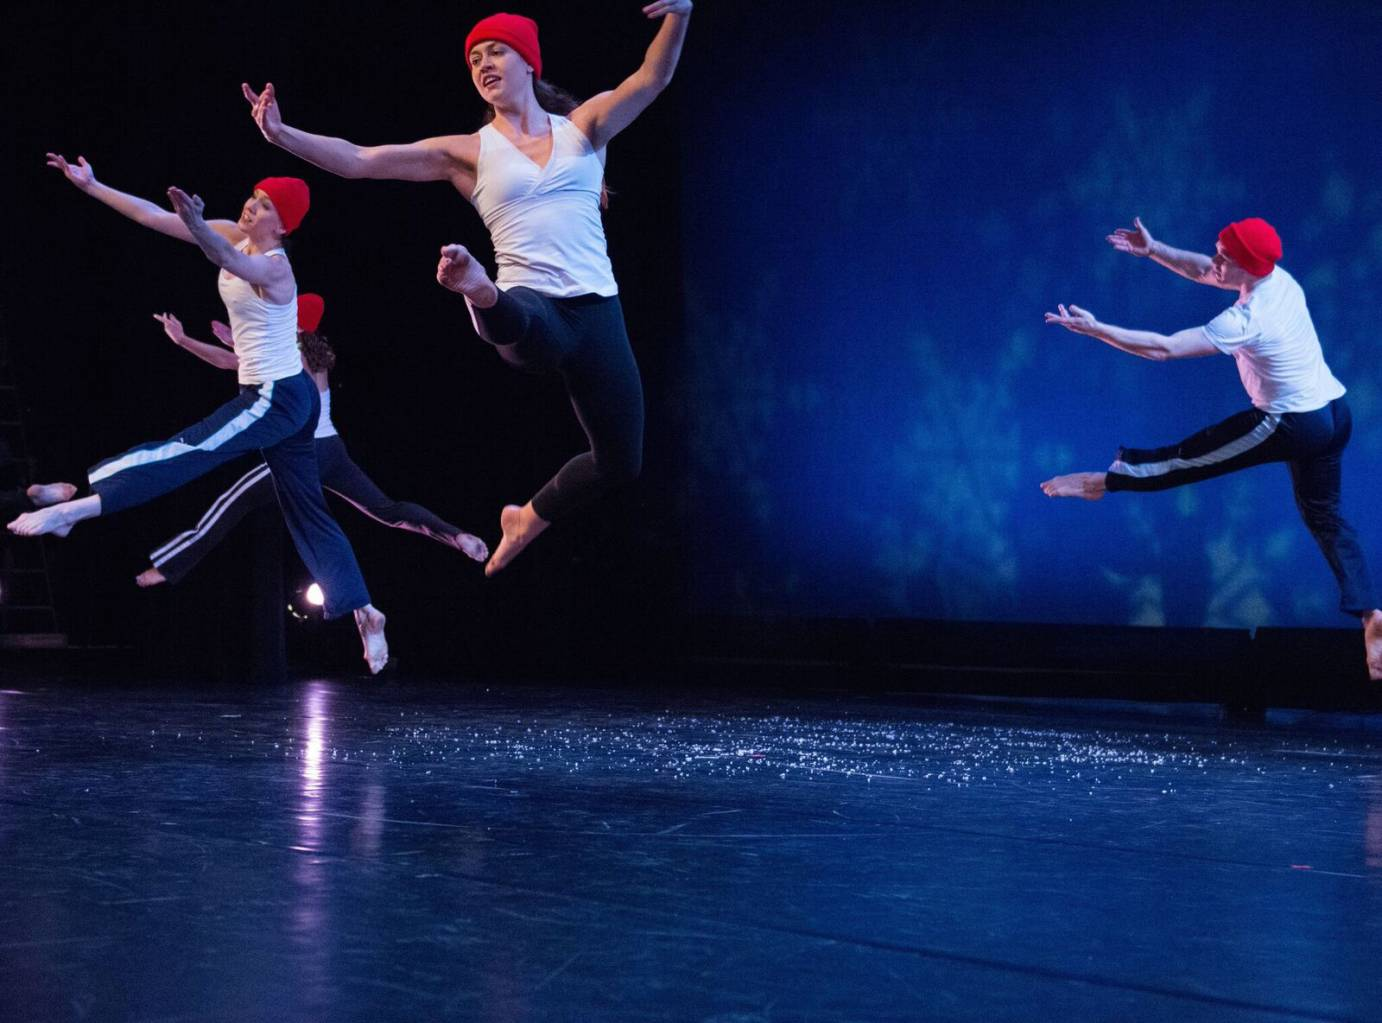 Dancers in red beanies leap